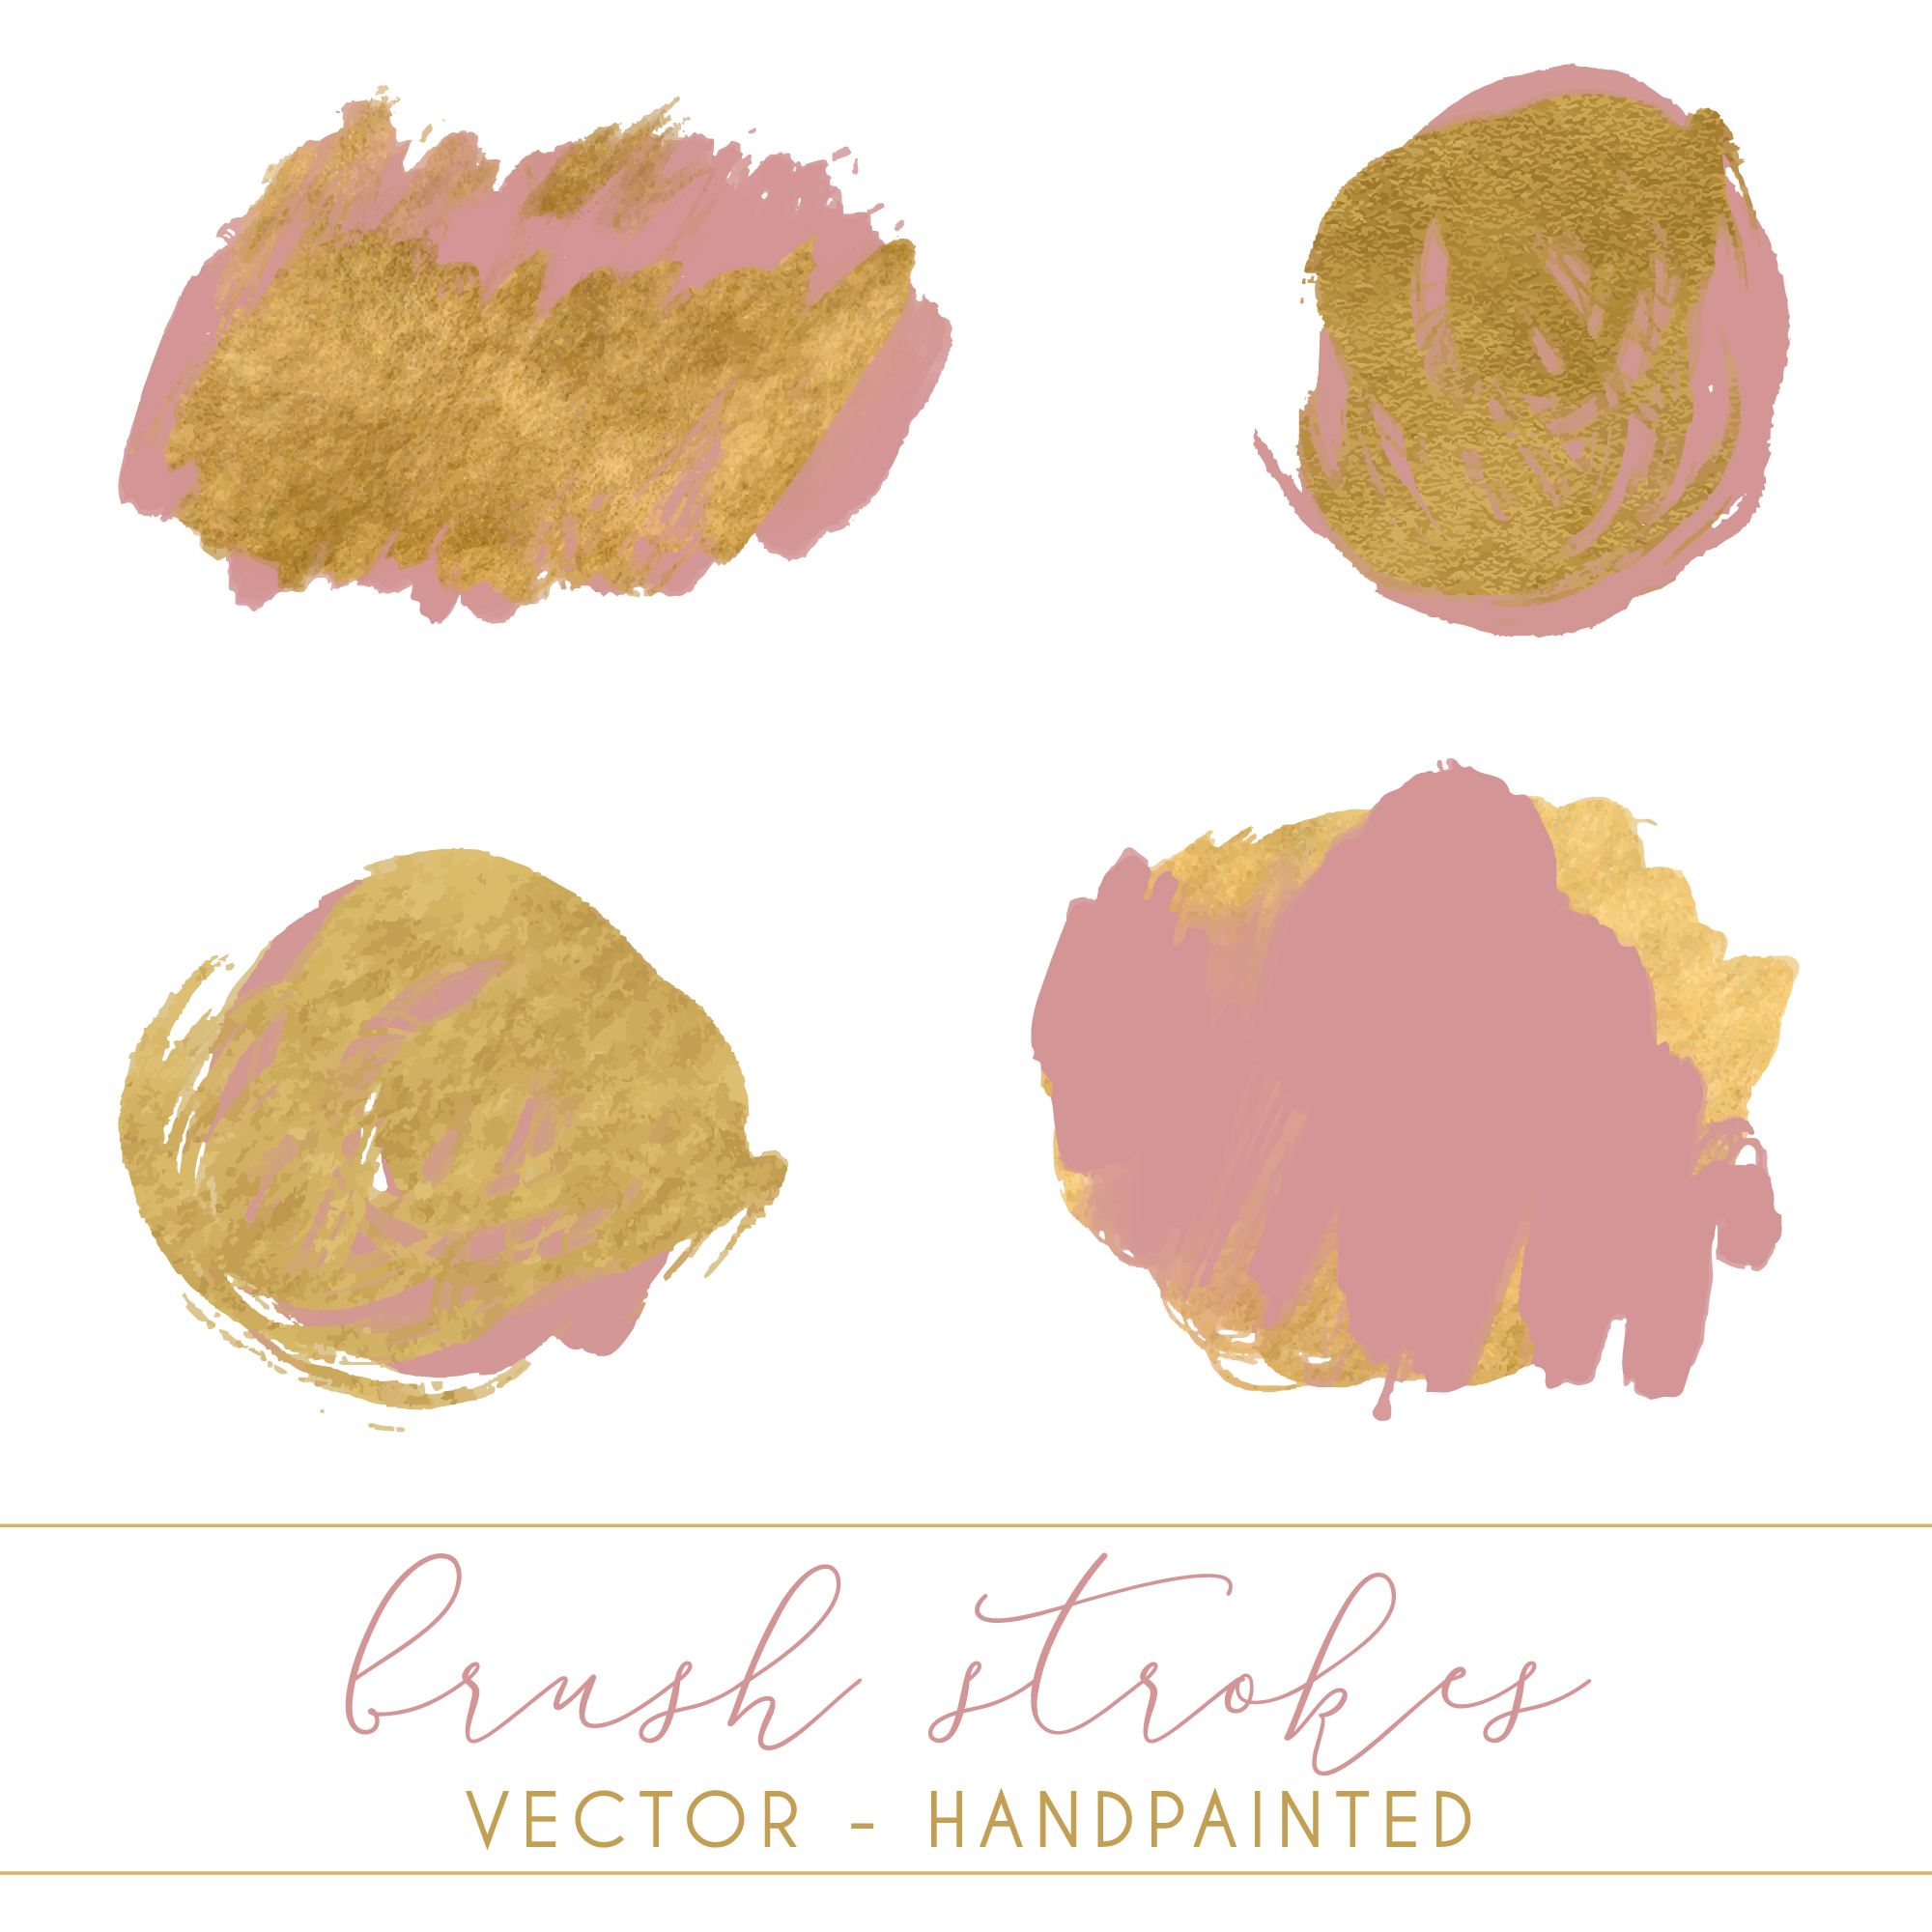 Hand painted brush strokes collection